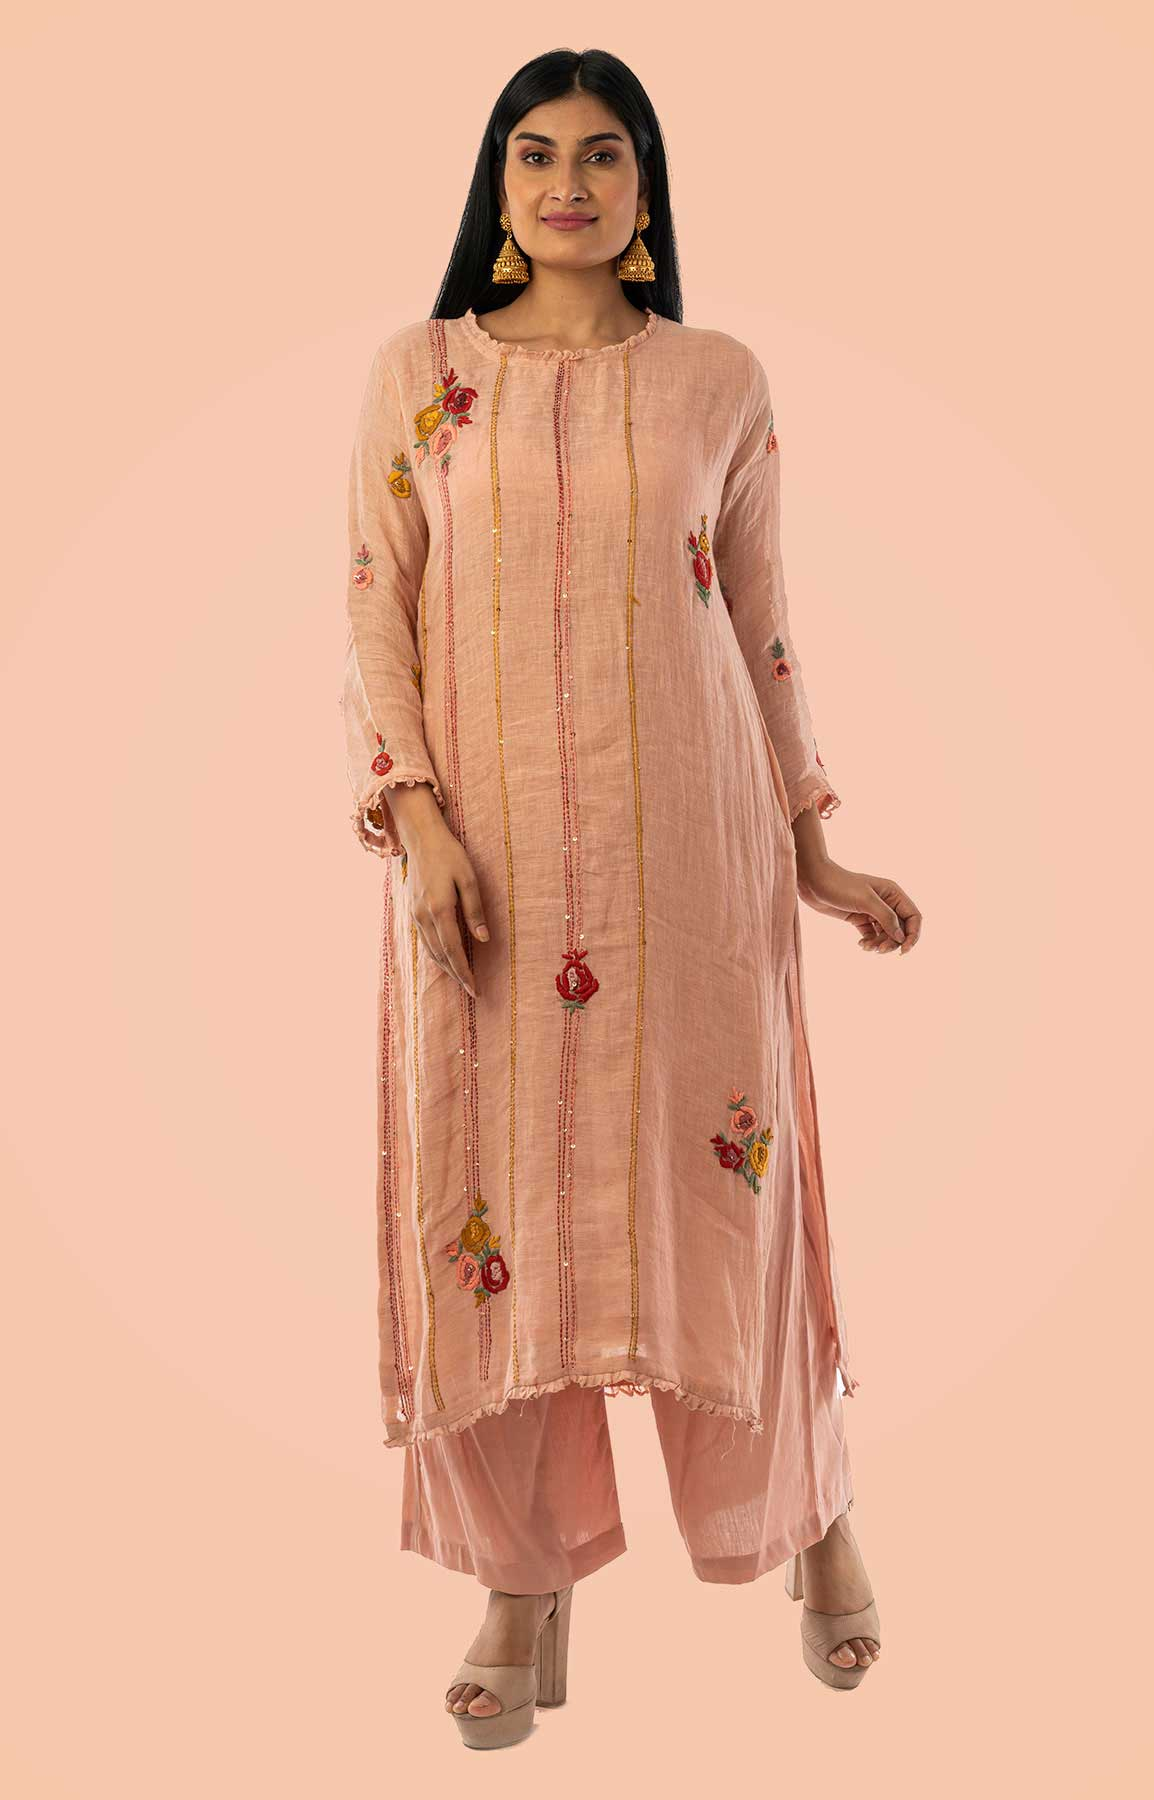 Peach Linen Suit With Floral Printed Dupatta – Viraaya By Ushnakmals